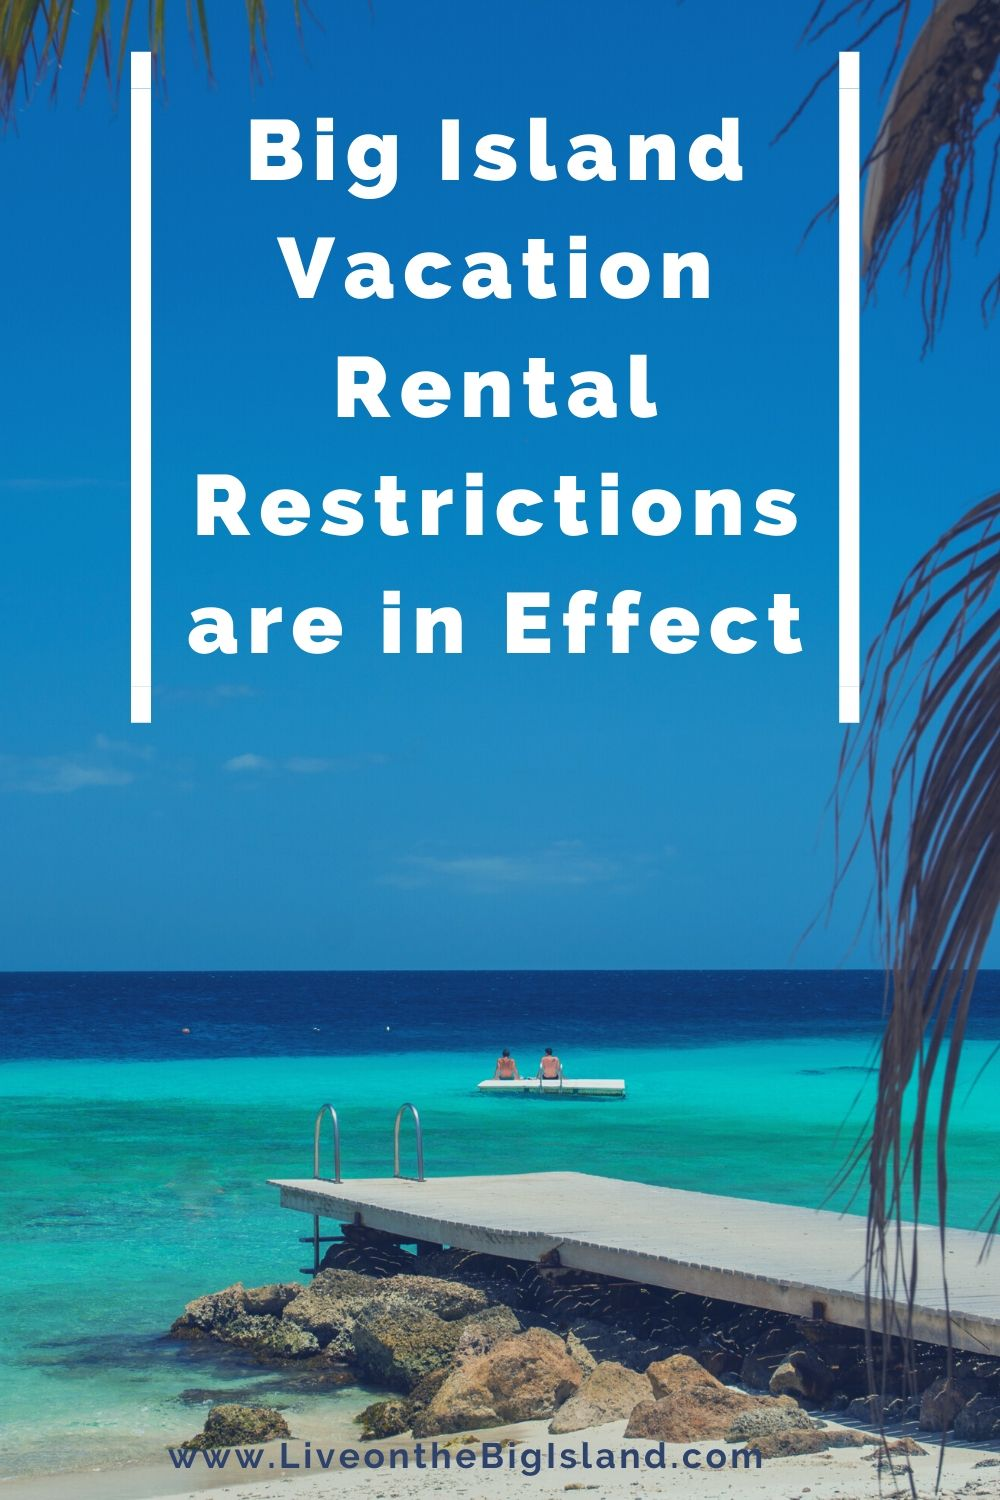 Big Island Vacation Rental Restrictions are in Effect